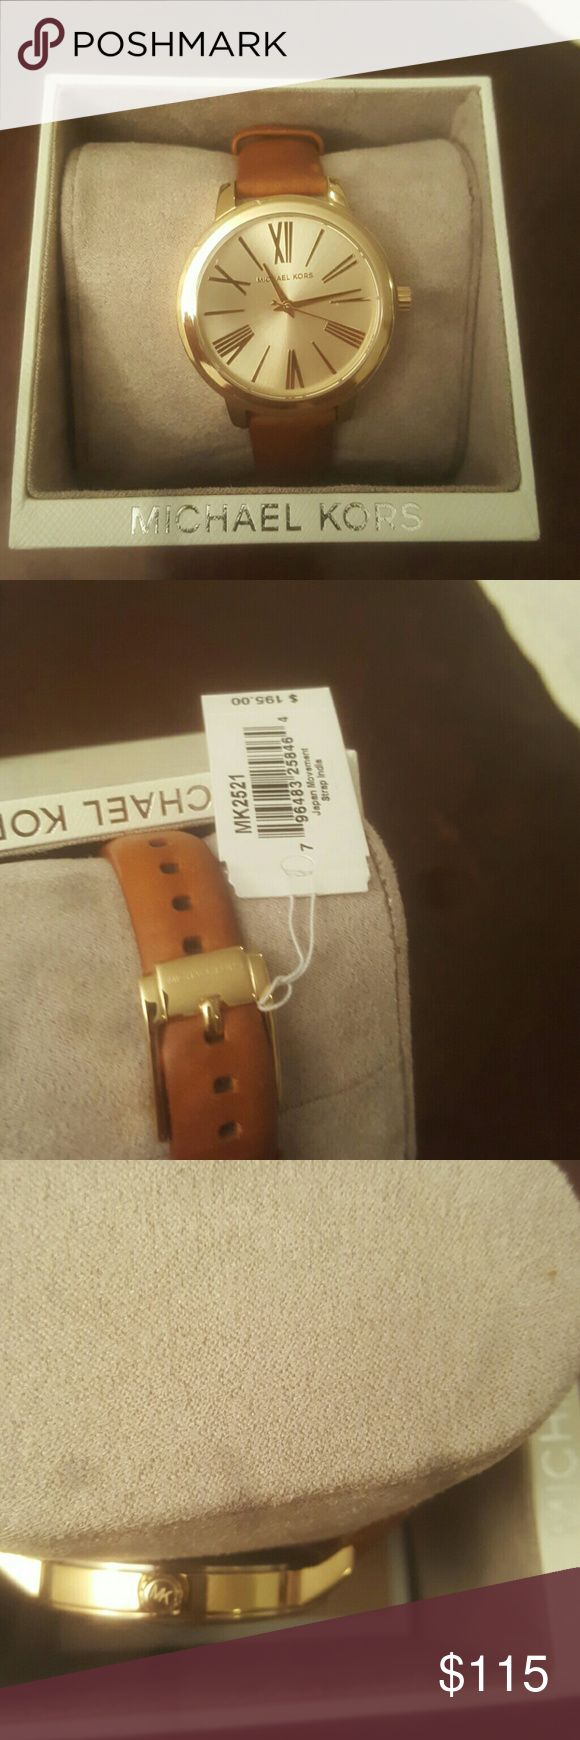 NWT Michael Kors Womens watch leather strap Brand new never worn. Cover has plastic on it as well as on the backplate. Price tag still attached. 100% authentic. Must Go asap!!! Michael Kors Accessories Watches